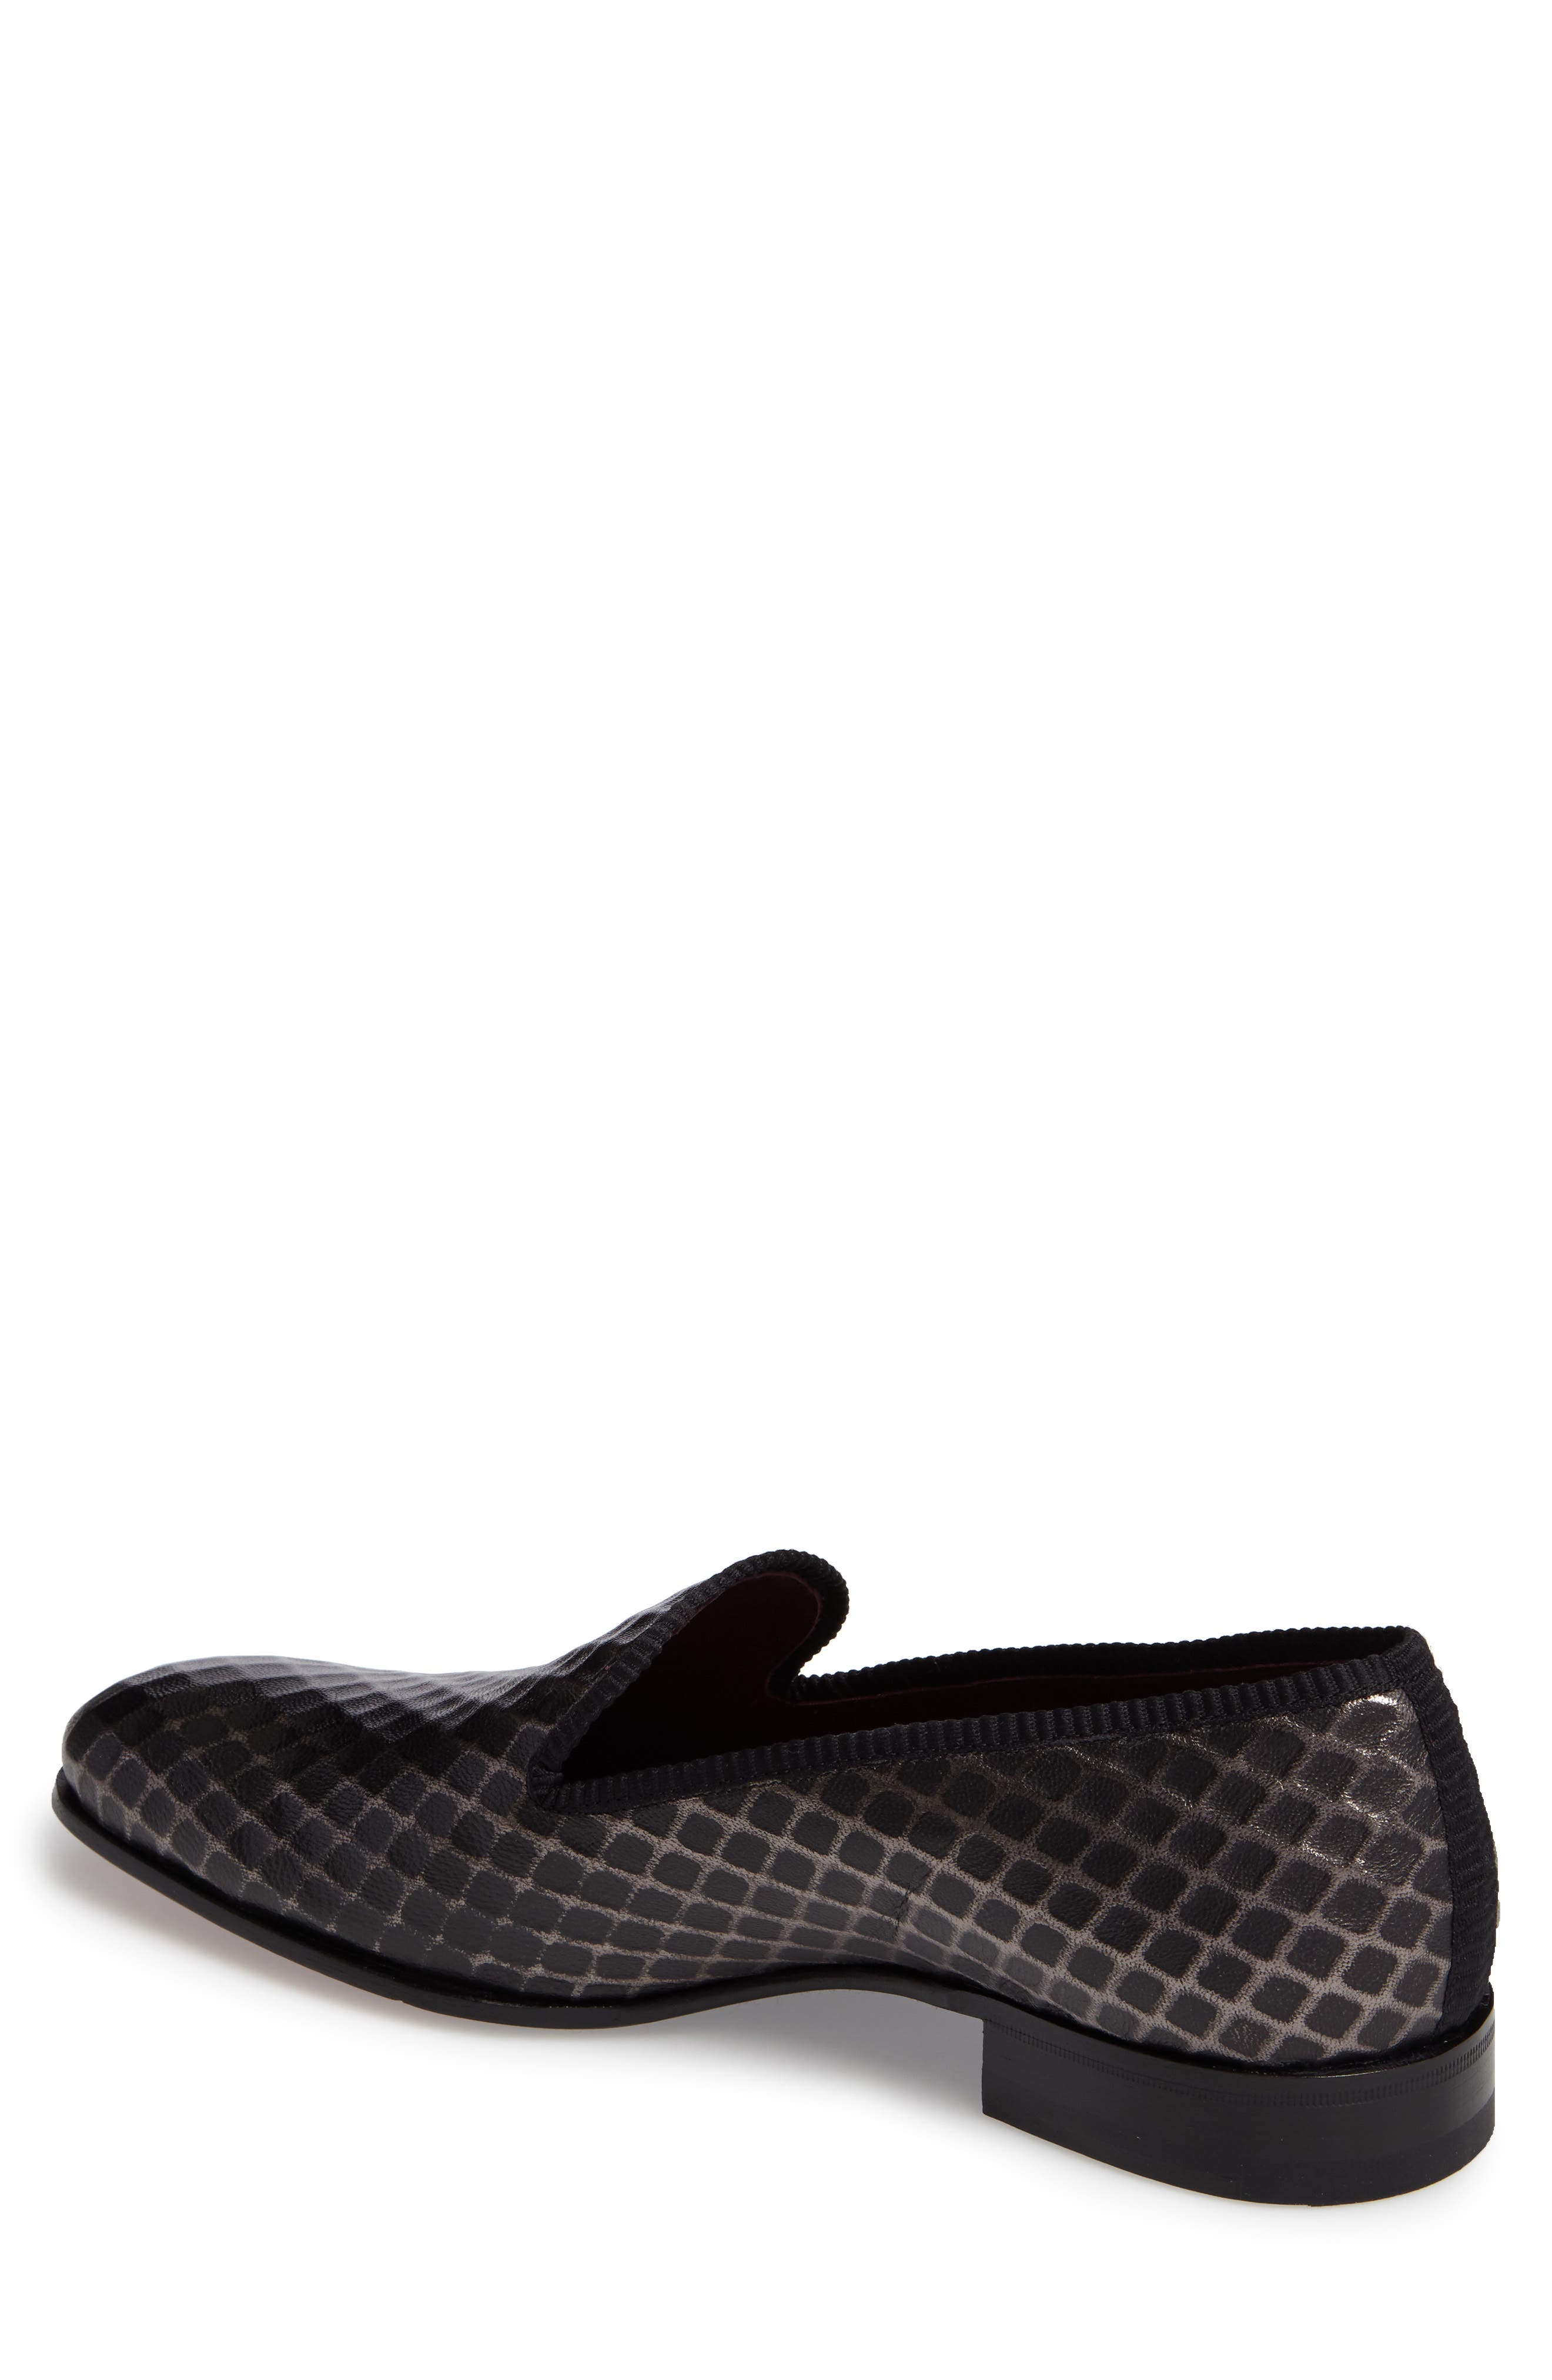 Hilbert Loafer,                             Alternate thumbnail 2, color,                             Grey Leather